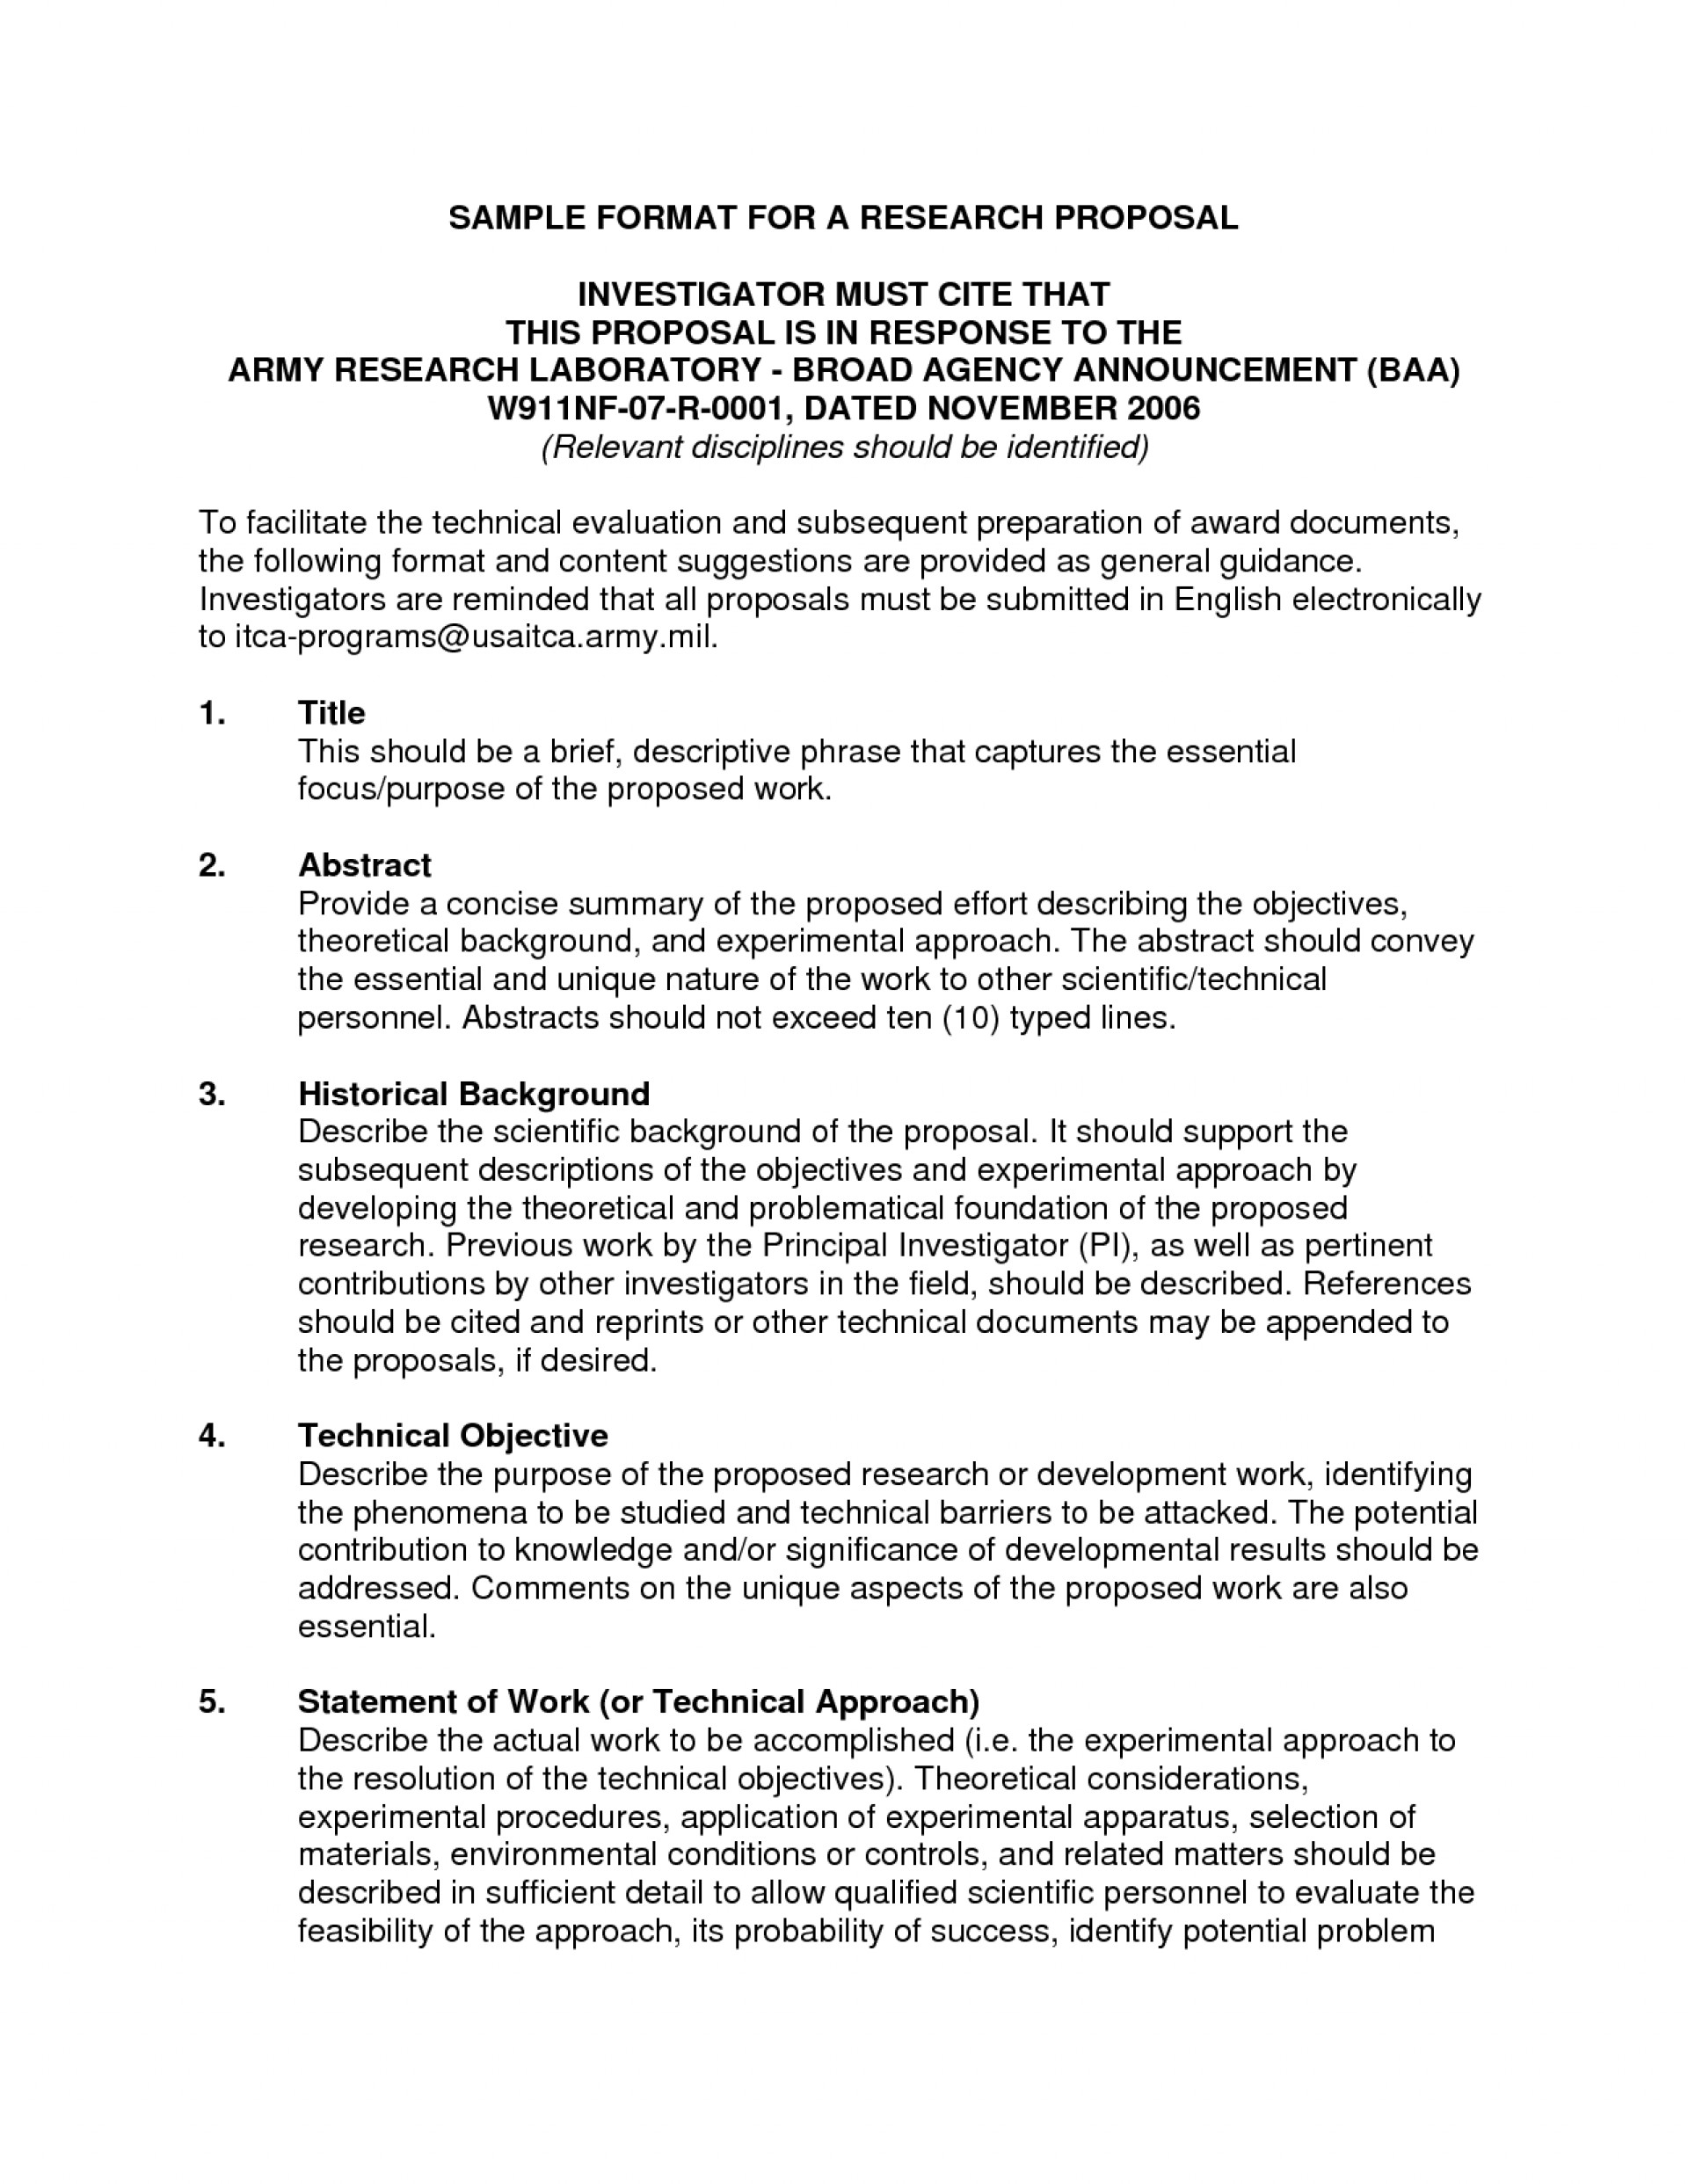 004 Research Proposal Template Qicmwzxw How To Write Abstract For Paper Stirring Ppt 1920